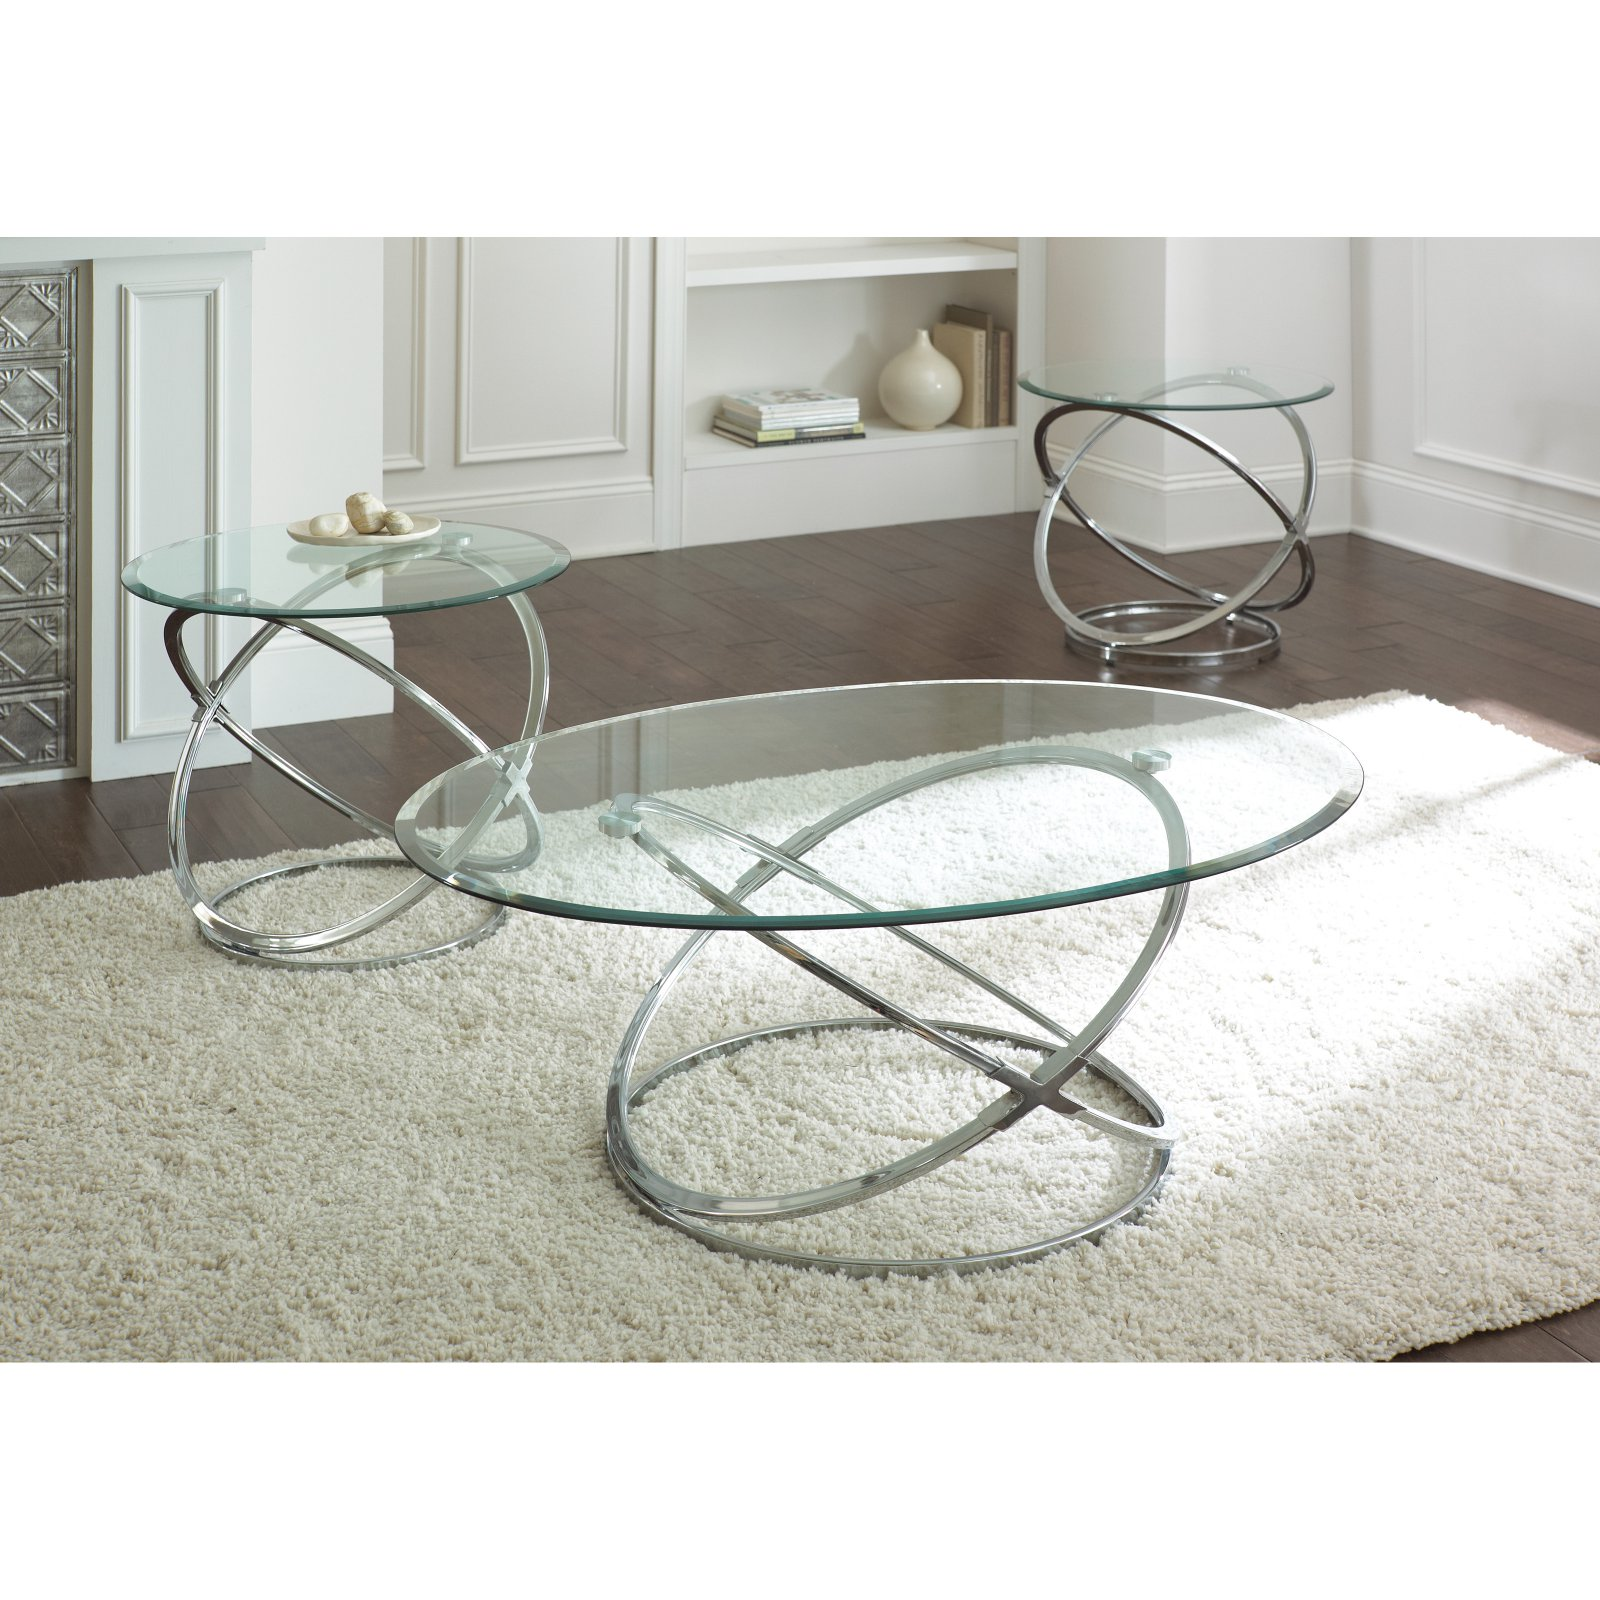 Steve Silver Orion Oval Chrome and Glass Coffee Table Set